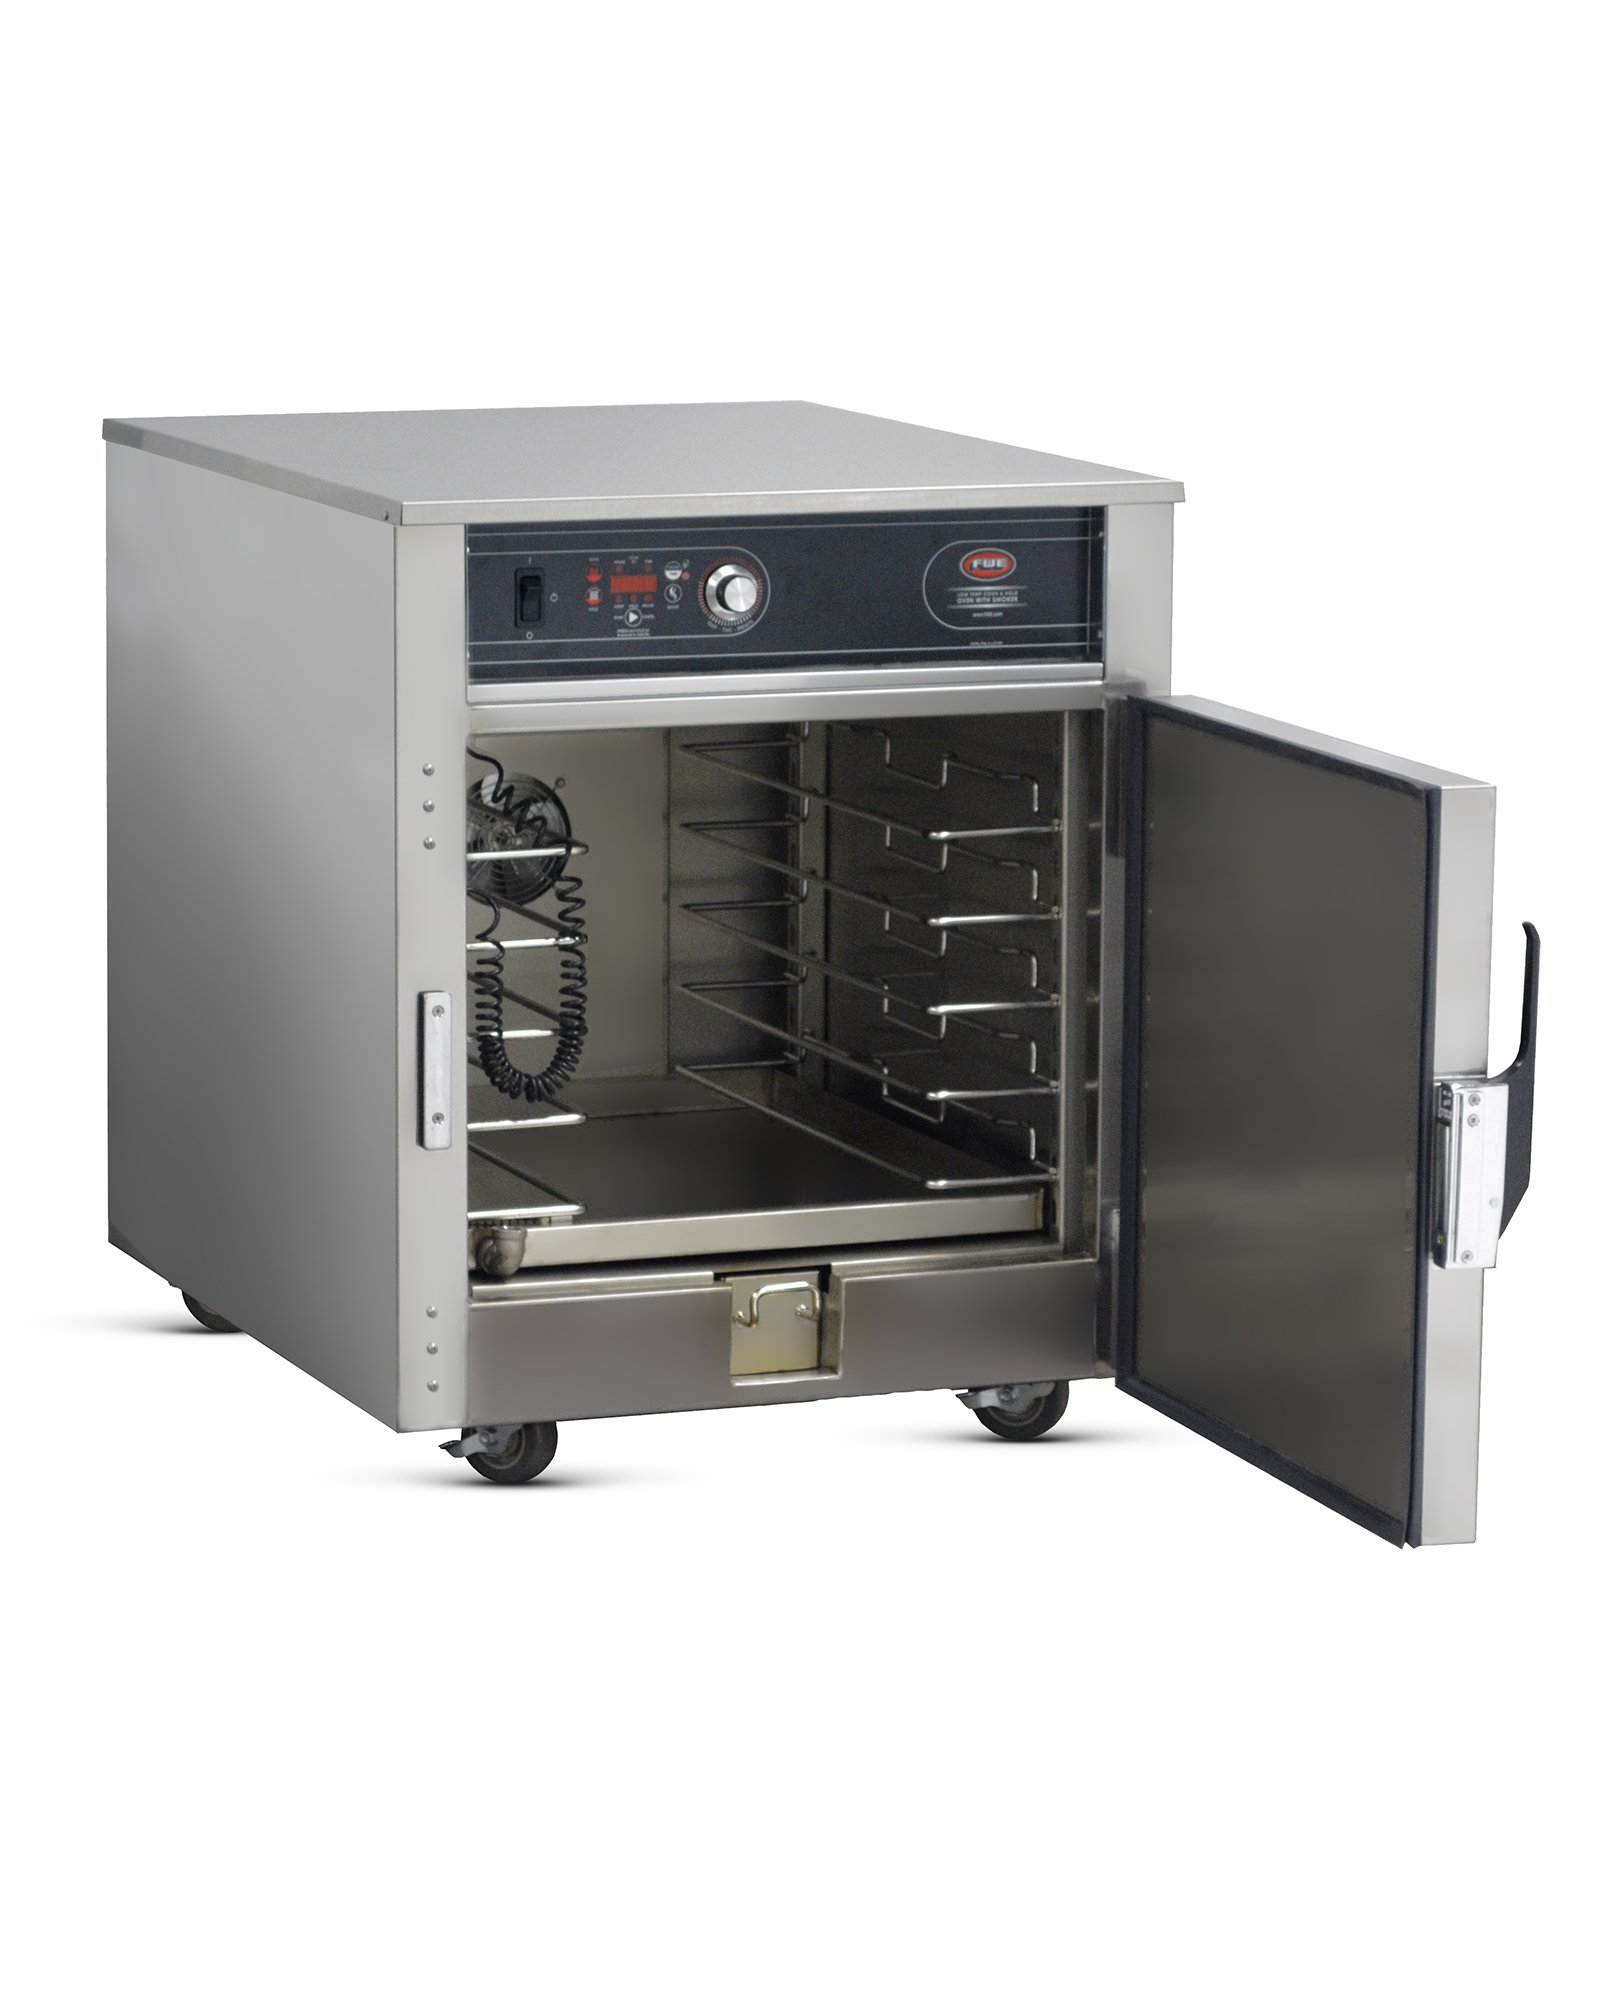 Food Warming Equipment LCH-5-SK-G2 Cook and Hold Smoker Oven with Universal Tray Slides, Under Counter